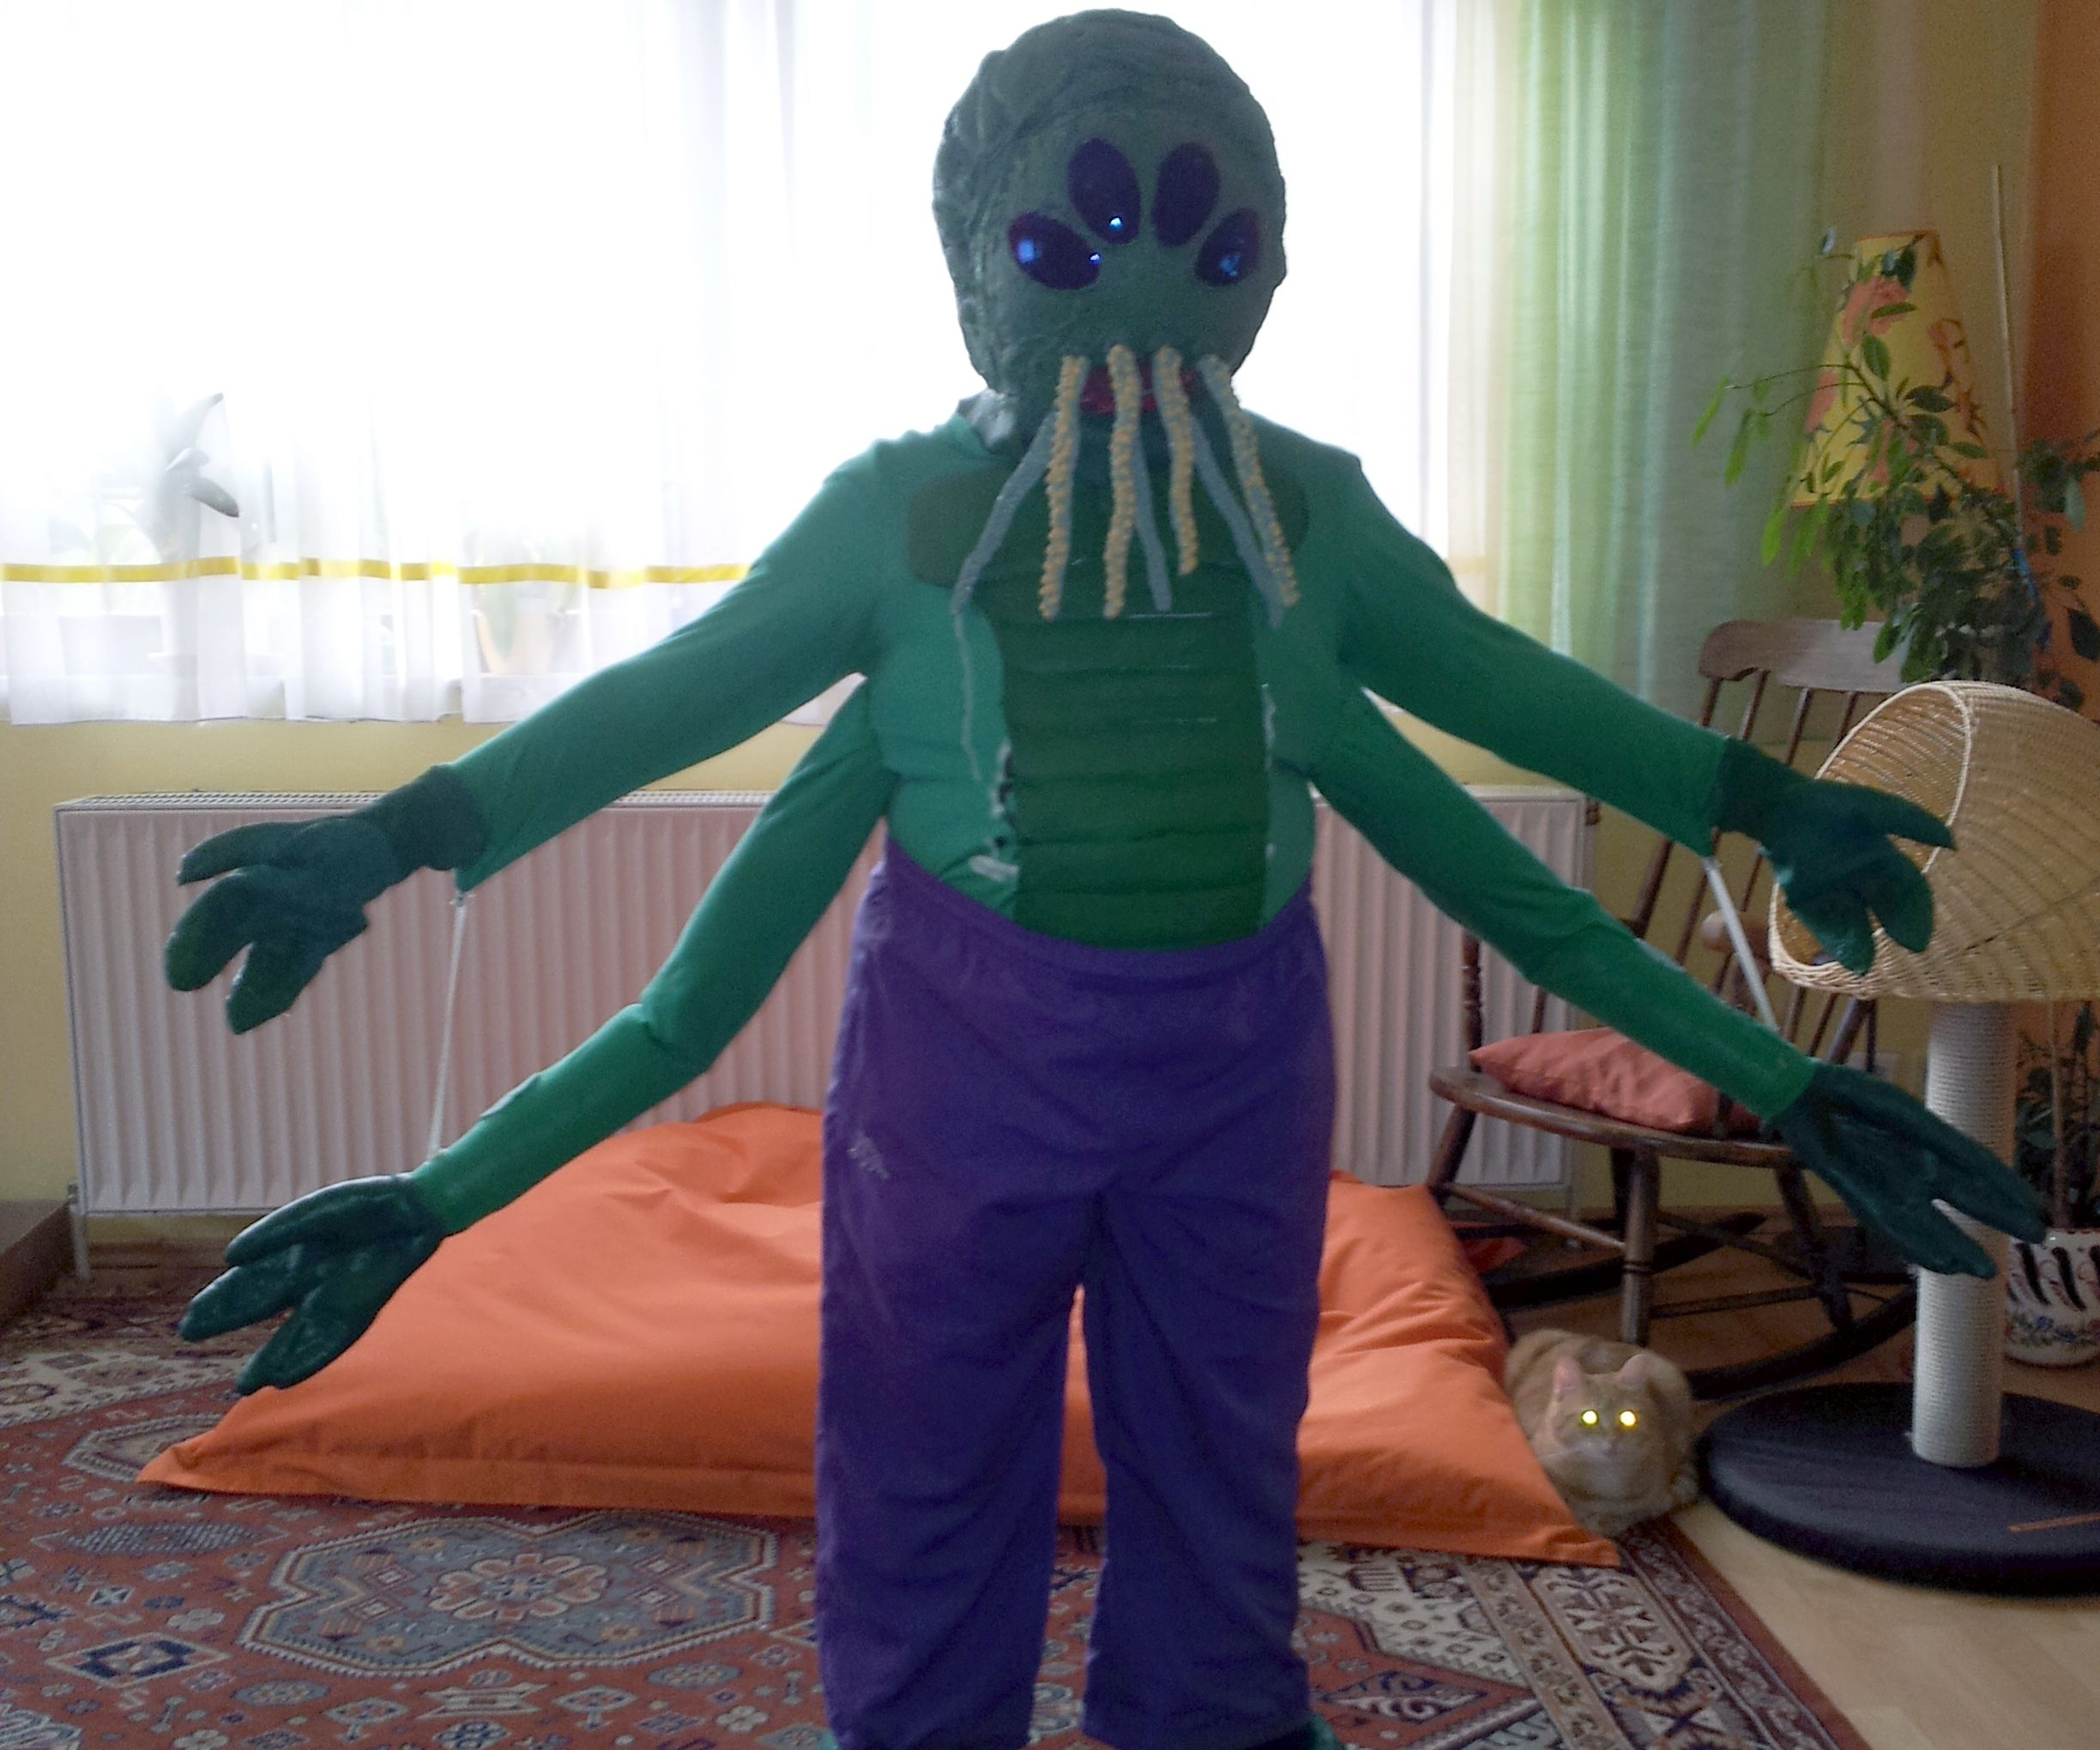 Tentacled four armed, four eyed alien costume.